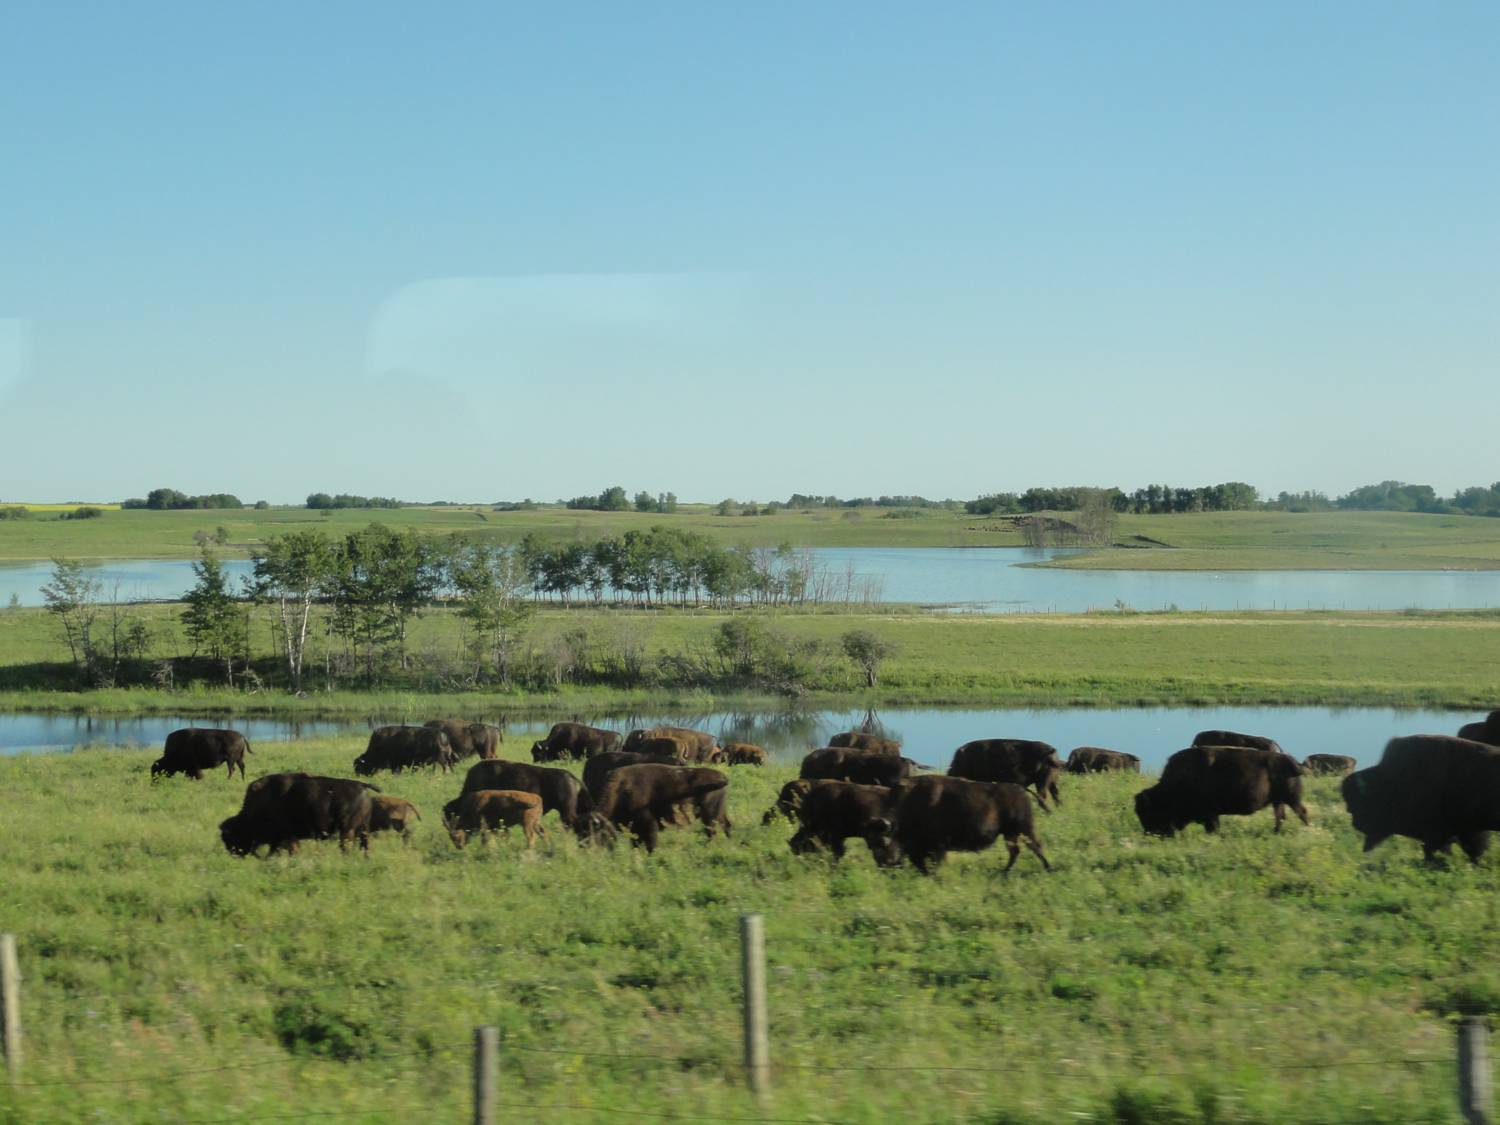 Picture:  It's not the vast herds of yesteryear, but we still see bison from the window of Via Rail.